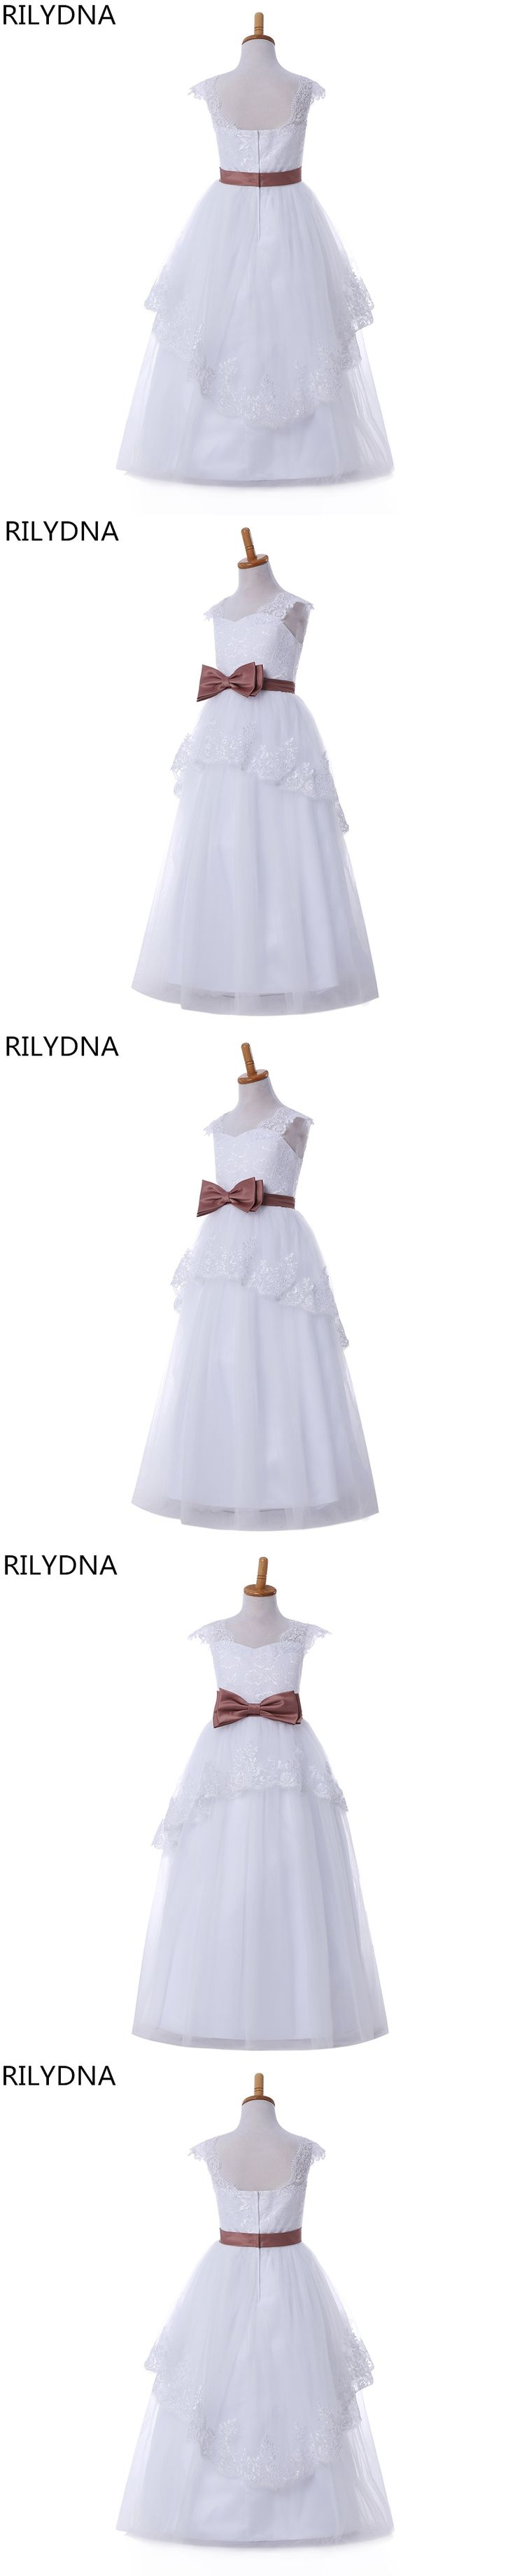 Flower Girl Dresses For Weddings Ball Gown V-neck Tulle Appliques Lace Bow First Communion Dresses For Girls